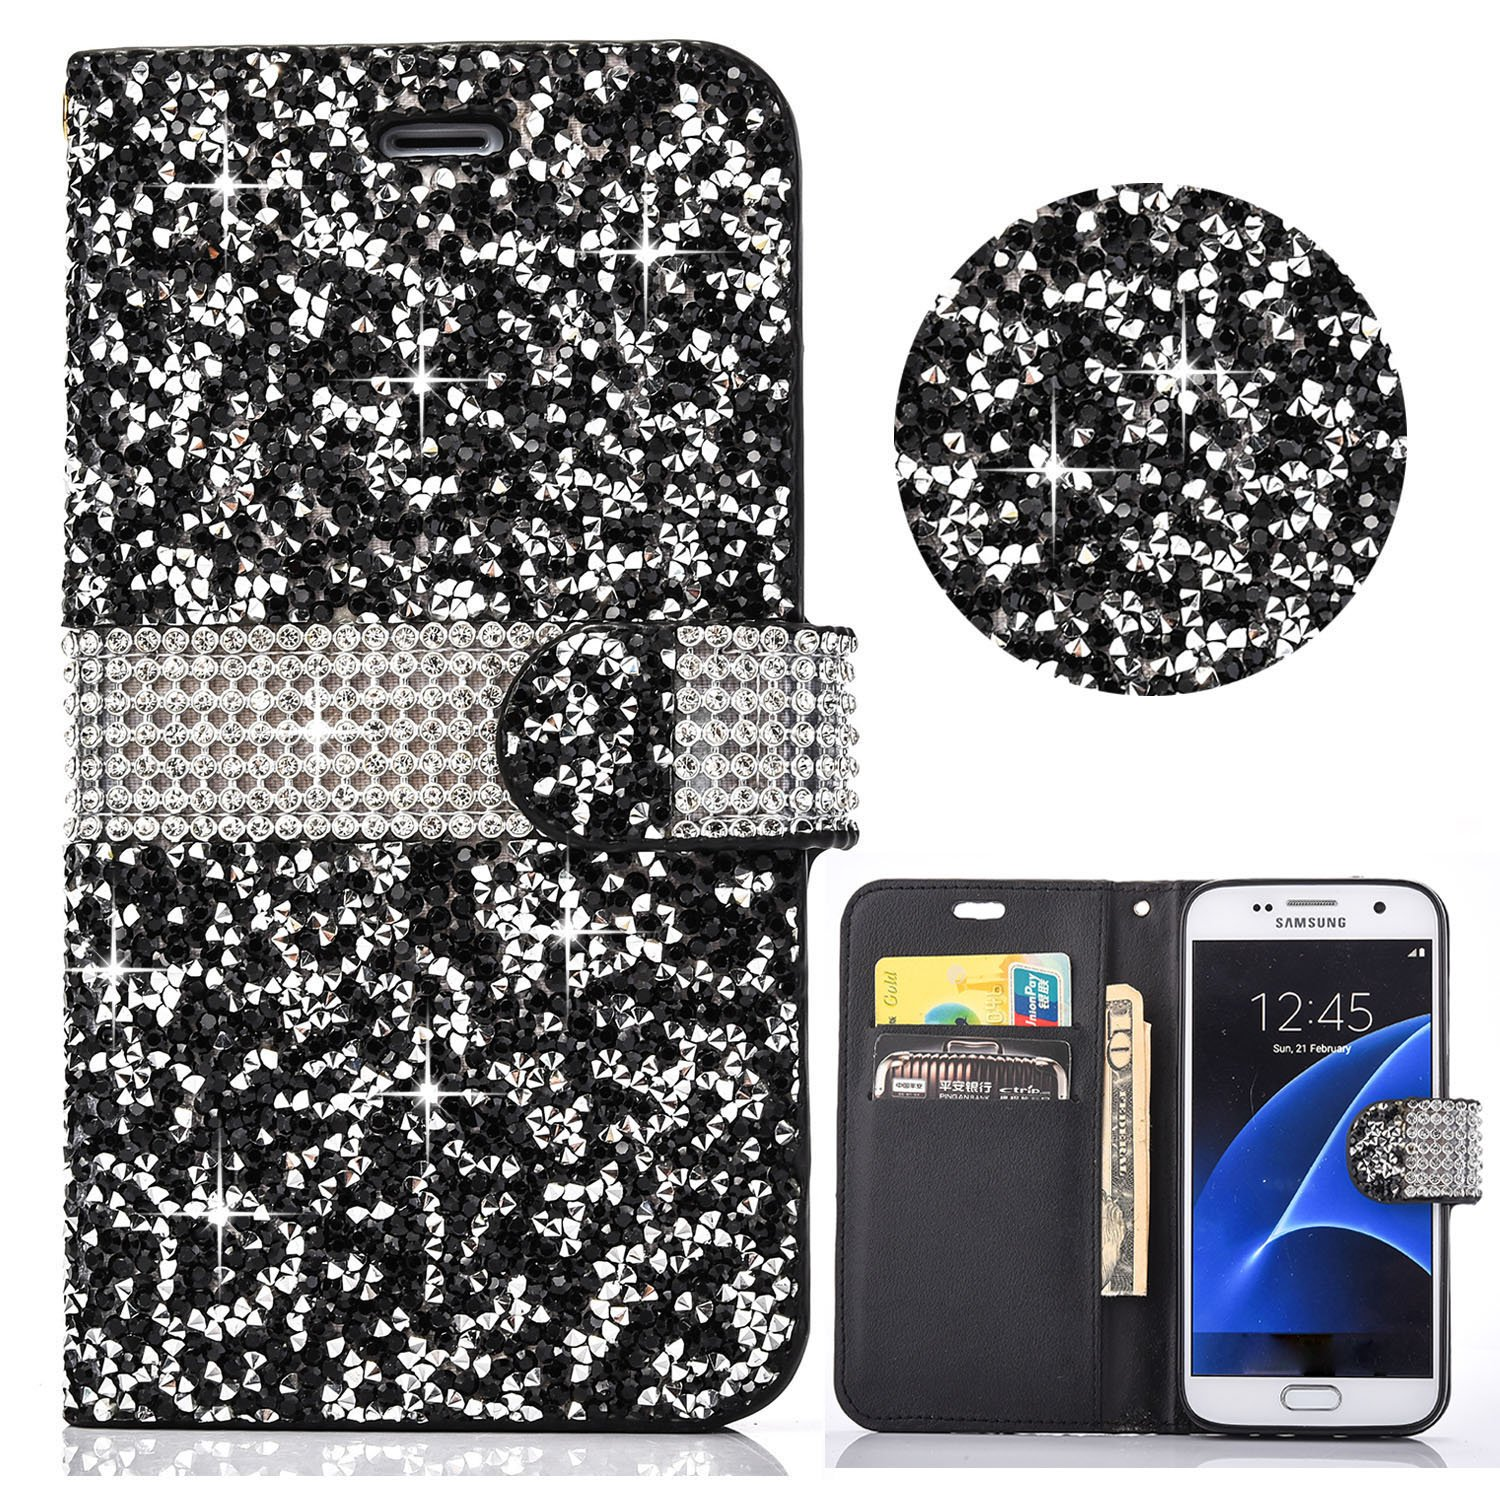 Galaxy S7 Wallet Case, Shinetop 3D Diamond Bling Glitter Crystal Rhinetone PU leather Flip Case Cover Magnetic Stand Shockproof Protective Cover with Card Holders for Samsung Galaxy S7 SM-G930-Silver